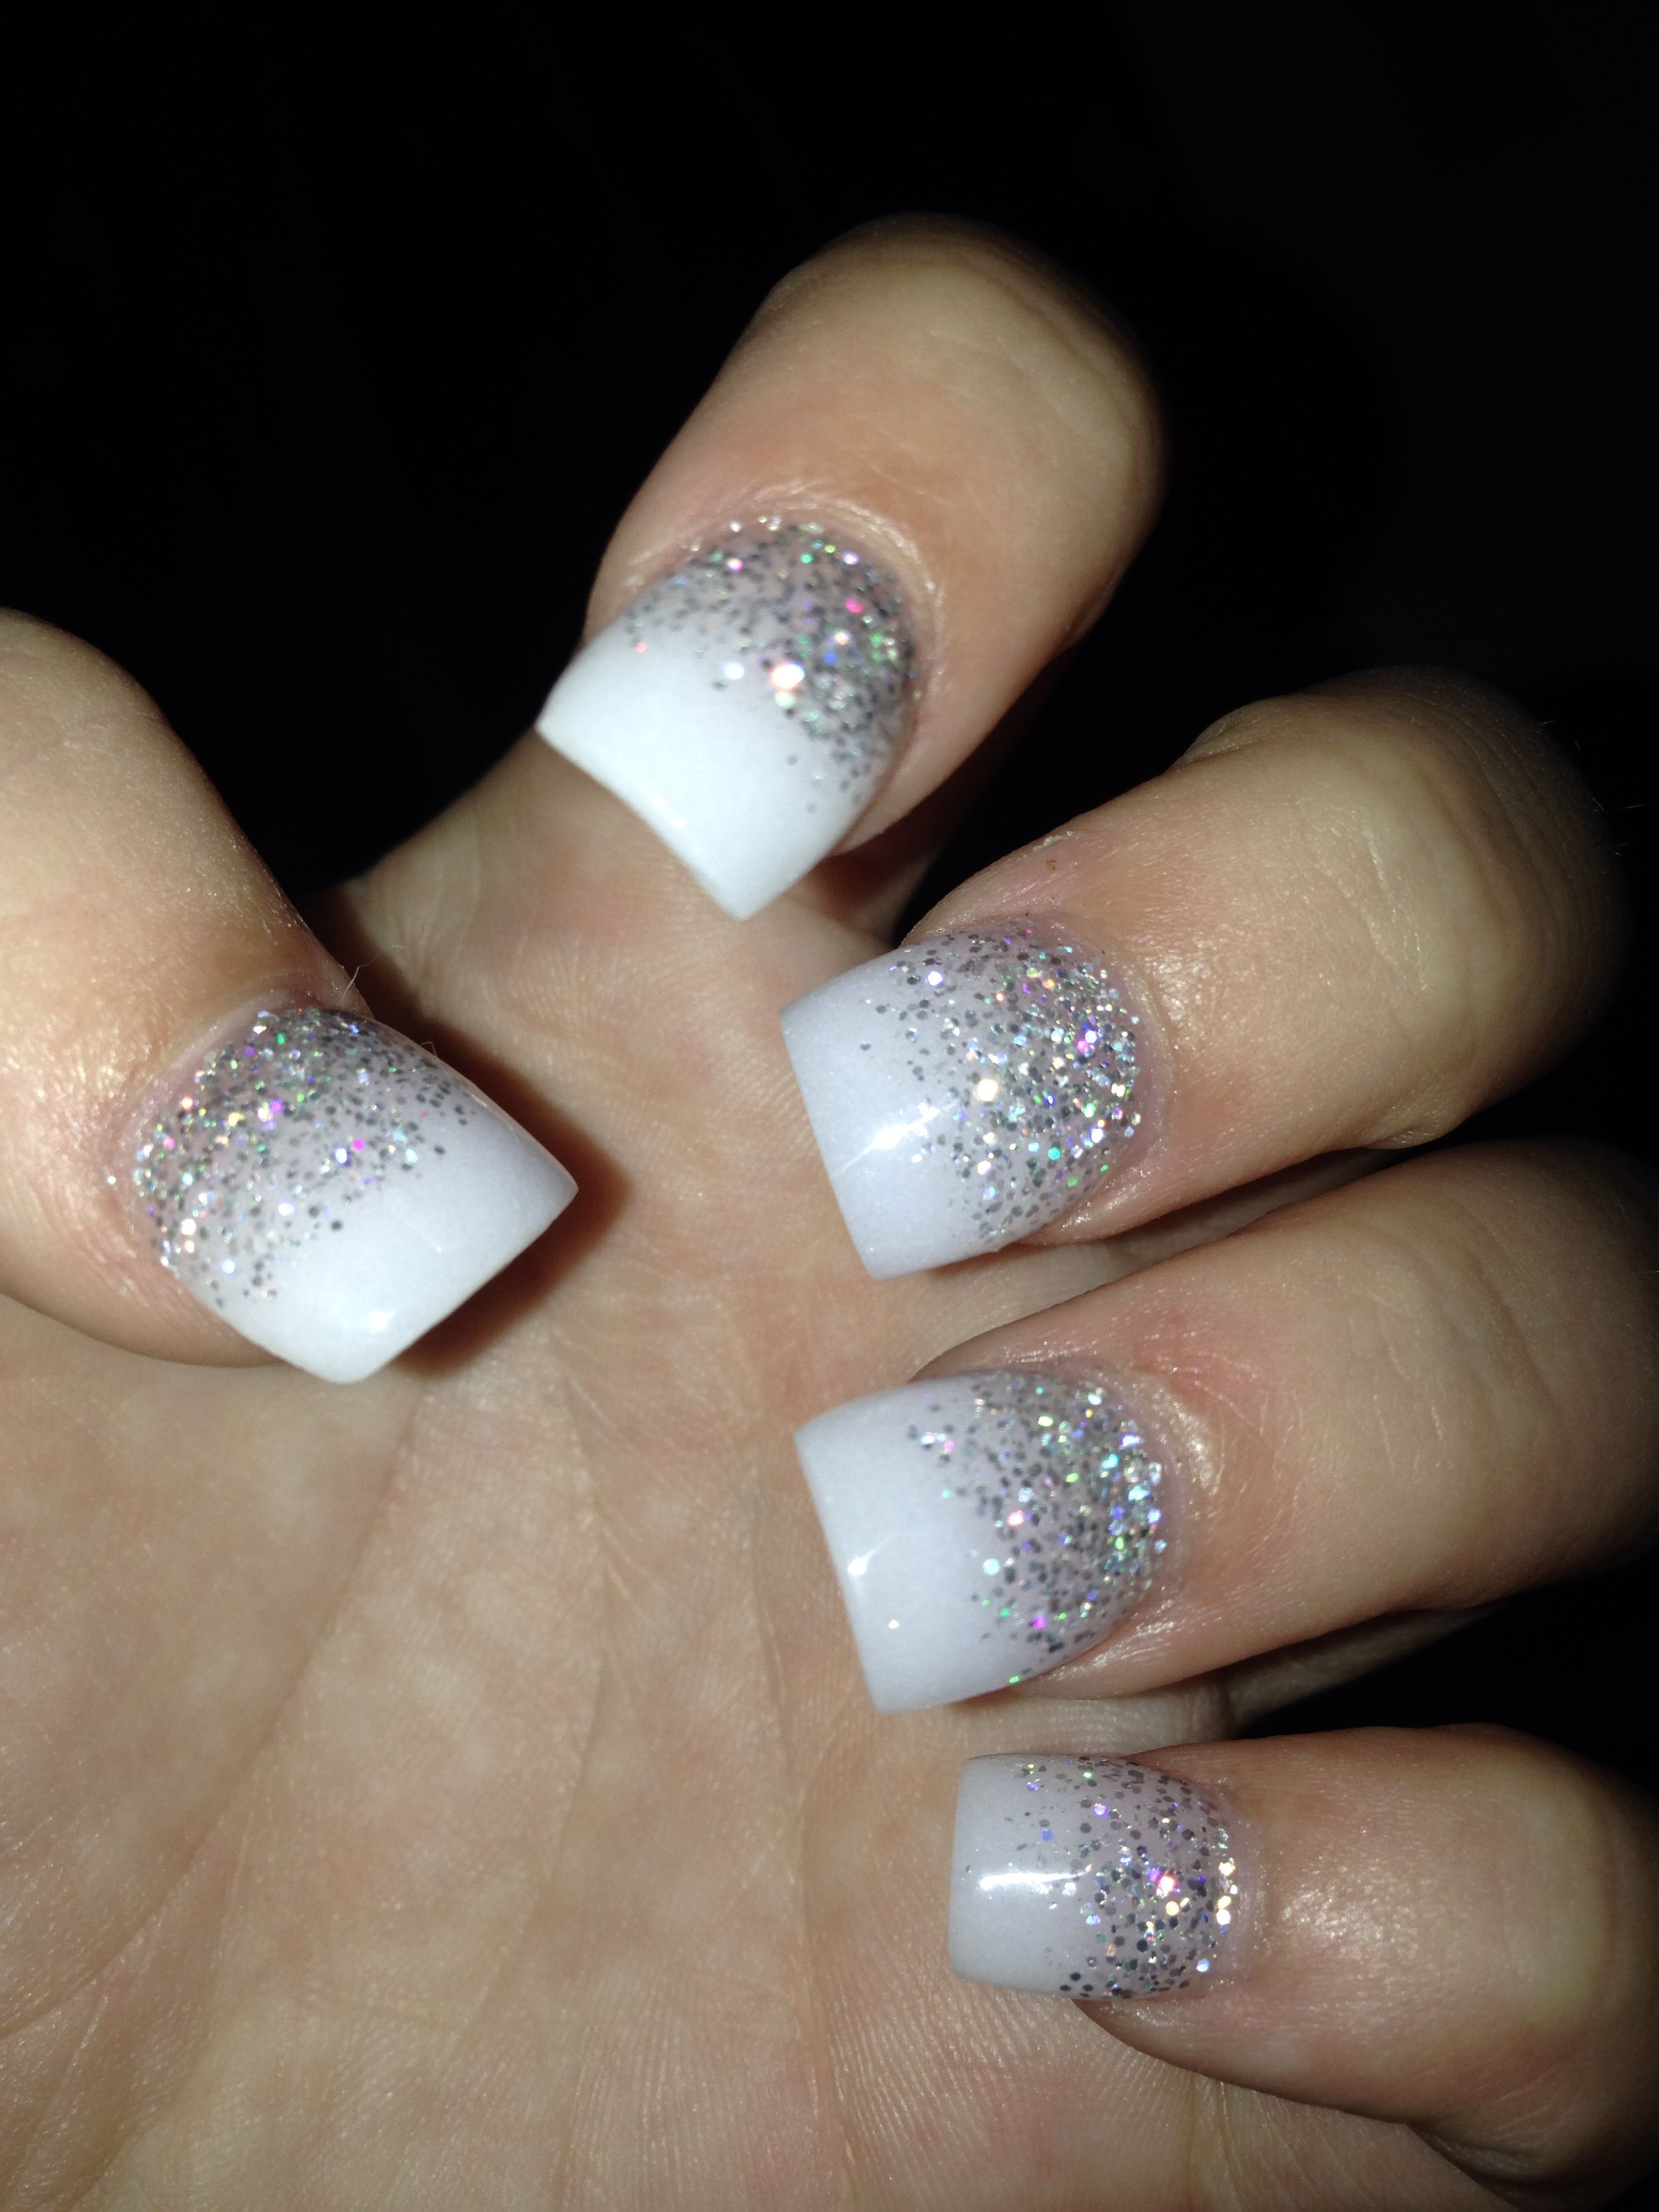 White and silver solar nails solarnails nails pinterest solar white and silver solar nails solarnails solutioingenieria Images